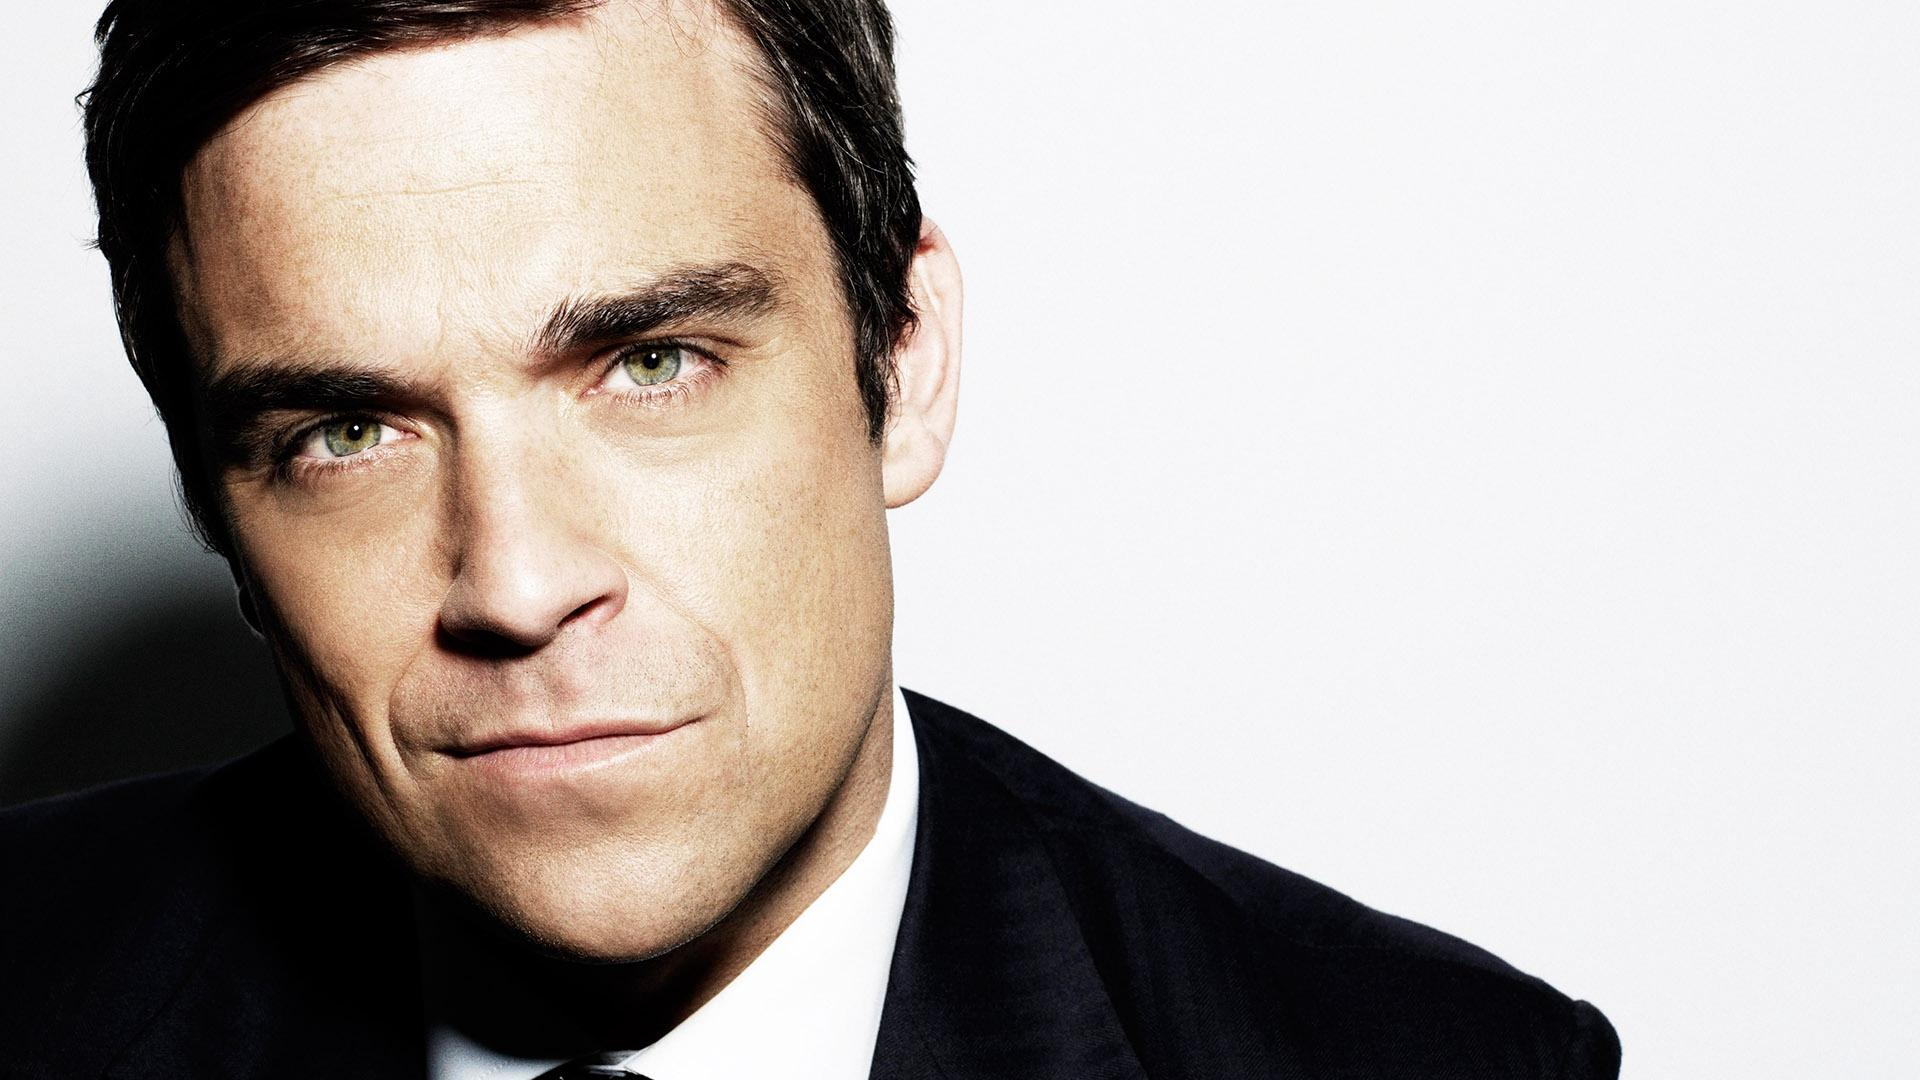 Download wallpaper 1920x1080 robbie williams, suit, face, eyebrows ...